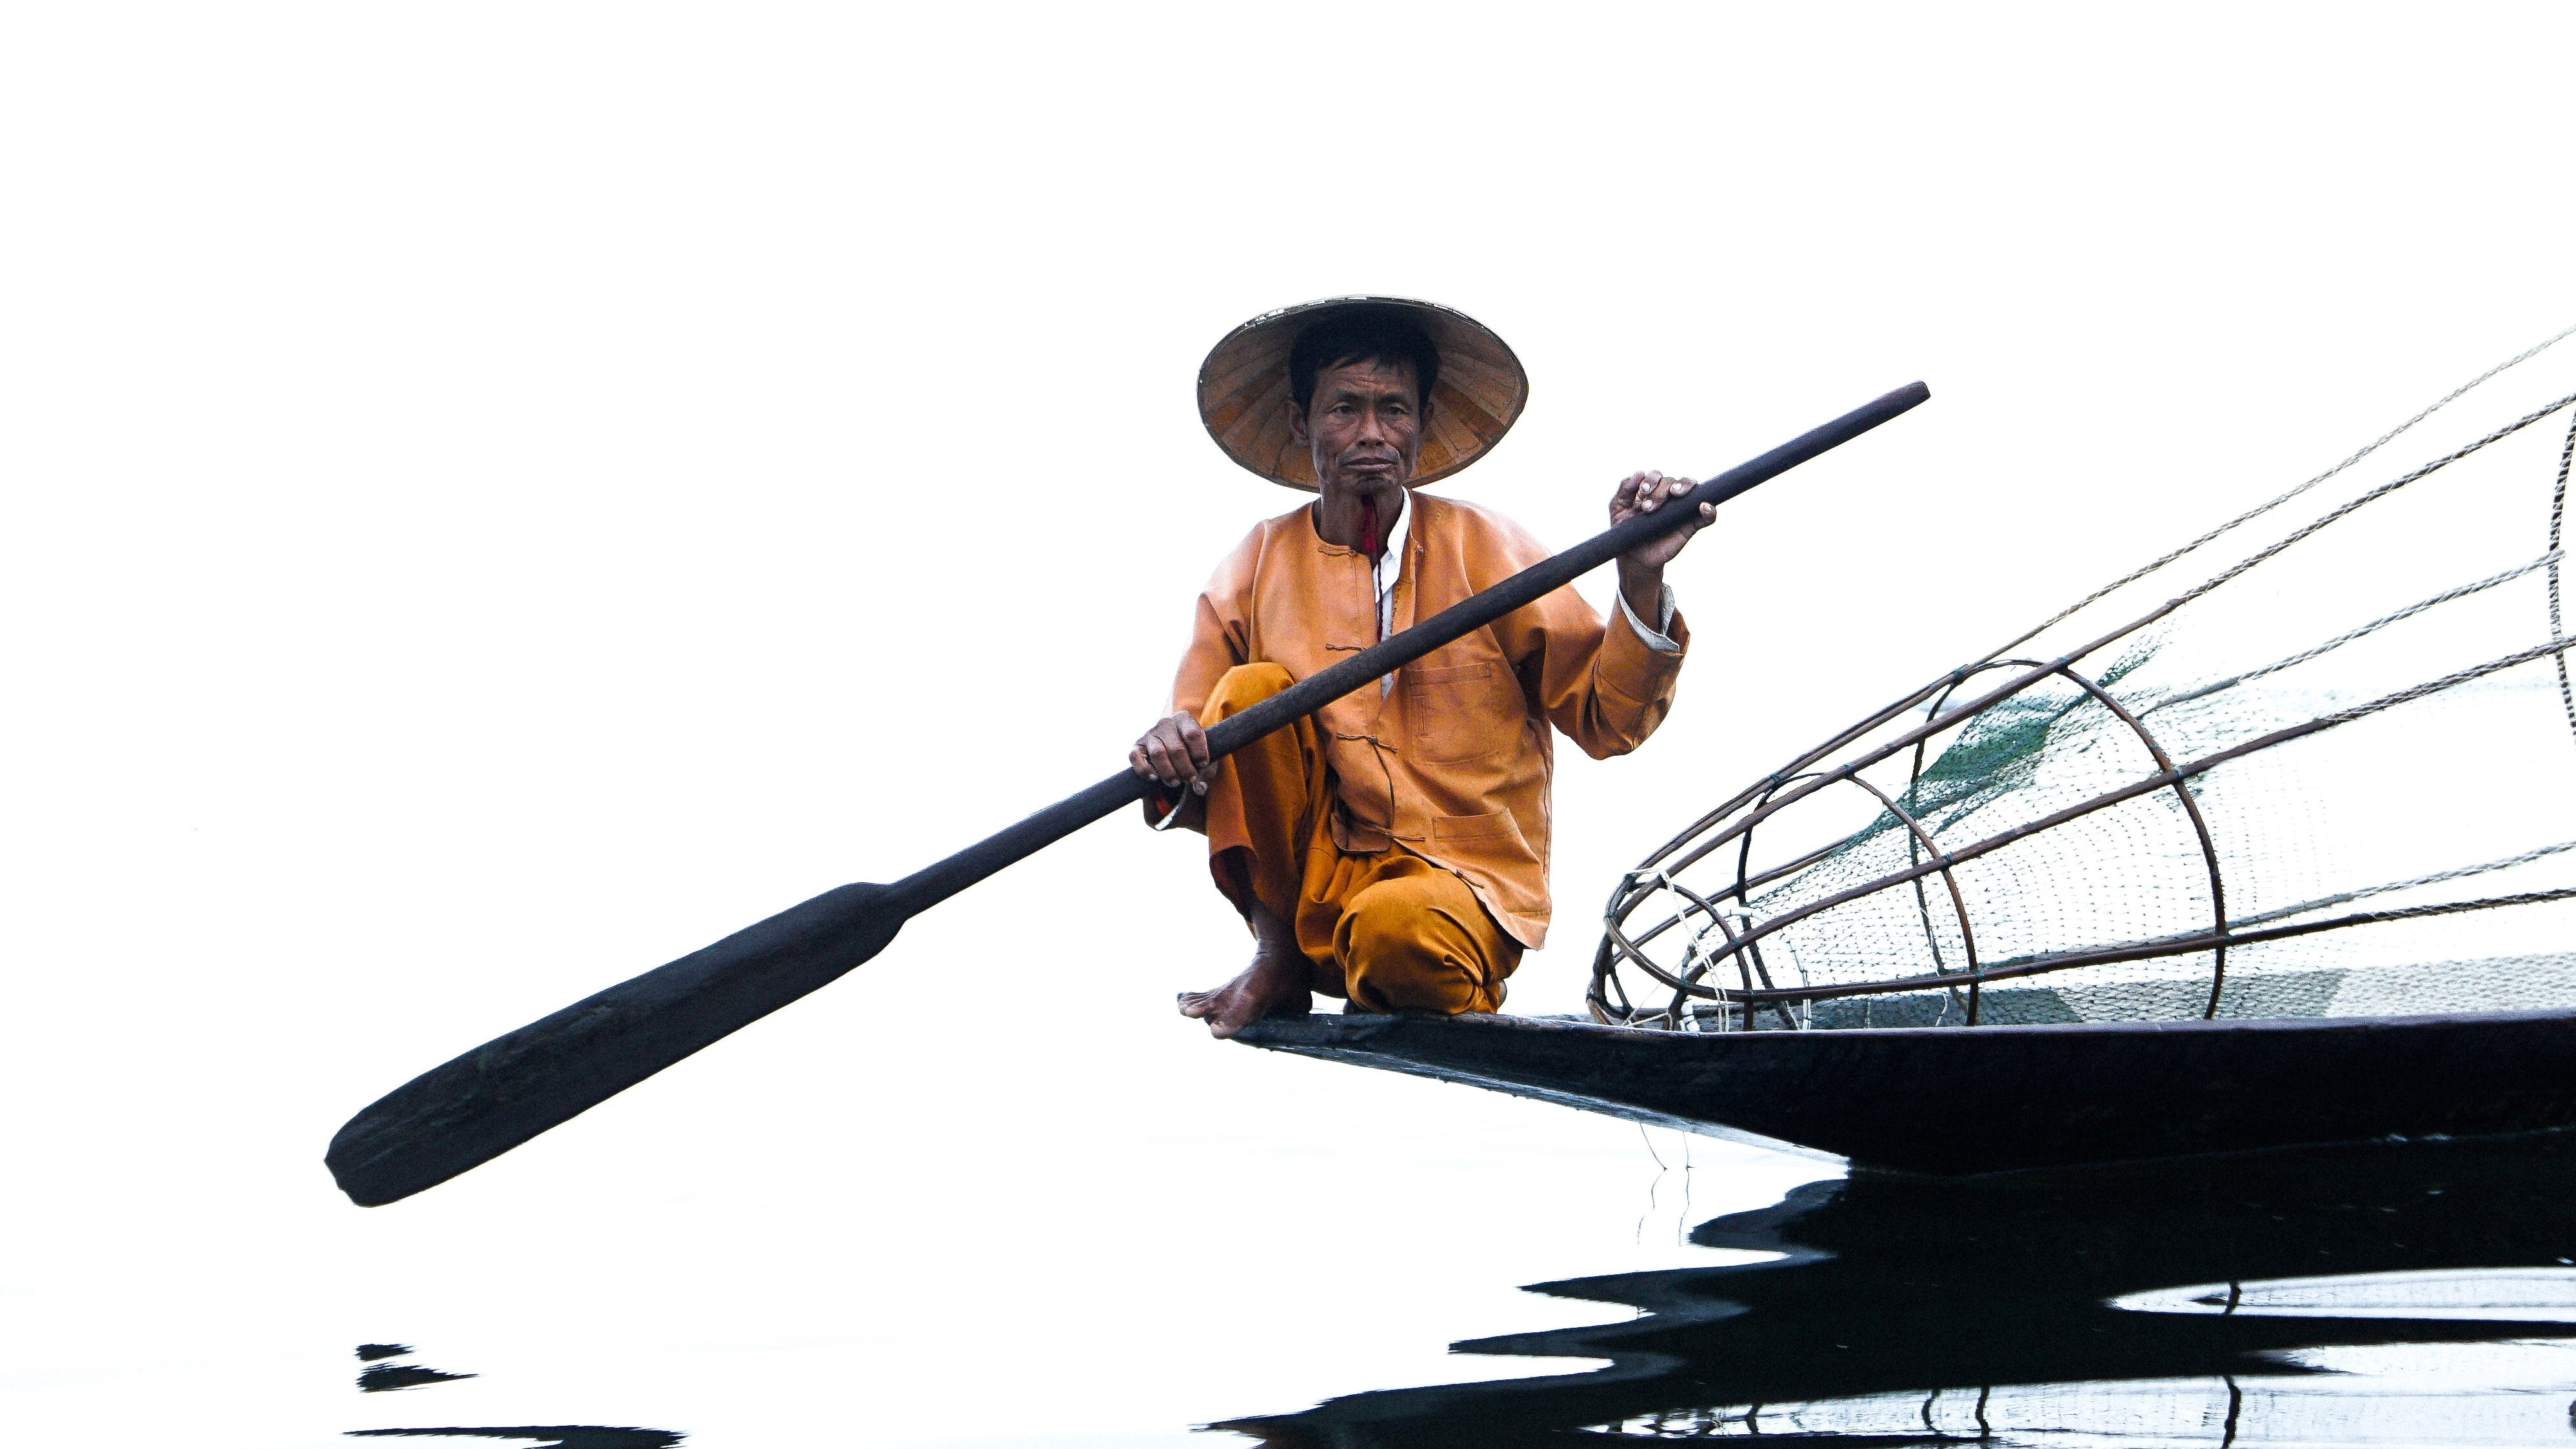 Burmese fisherman in yellow paddling boat over smooth waters